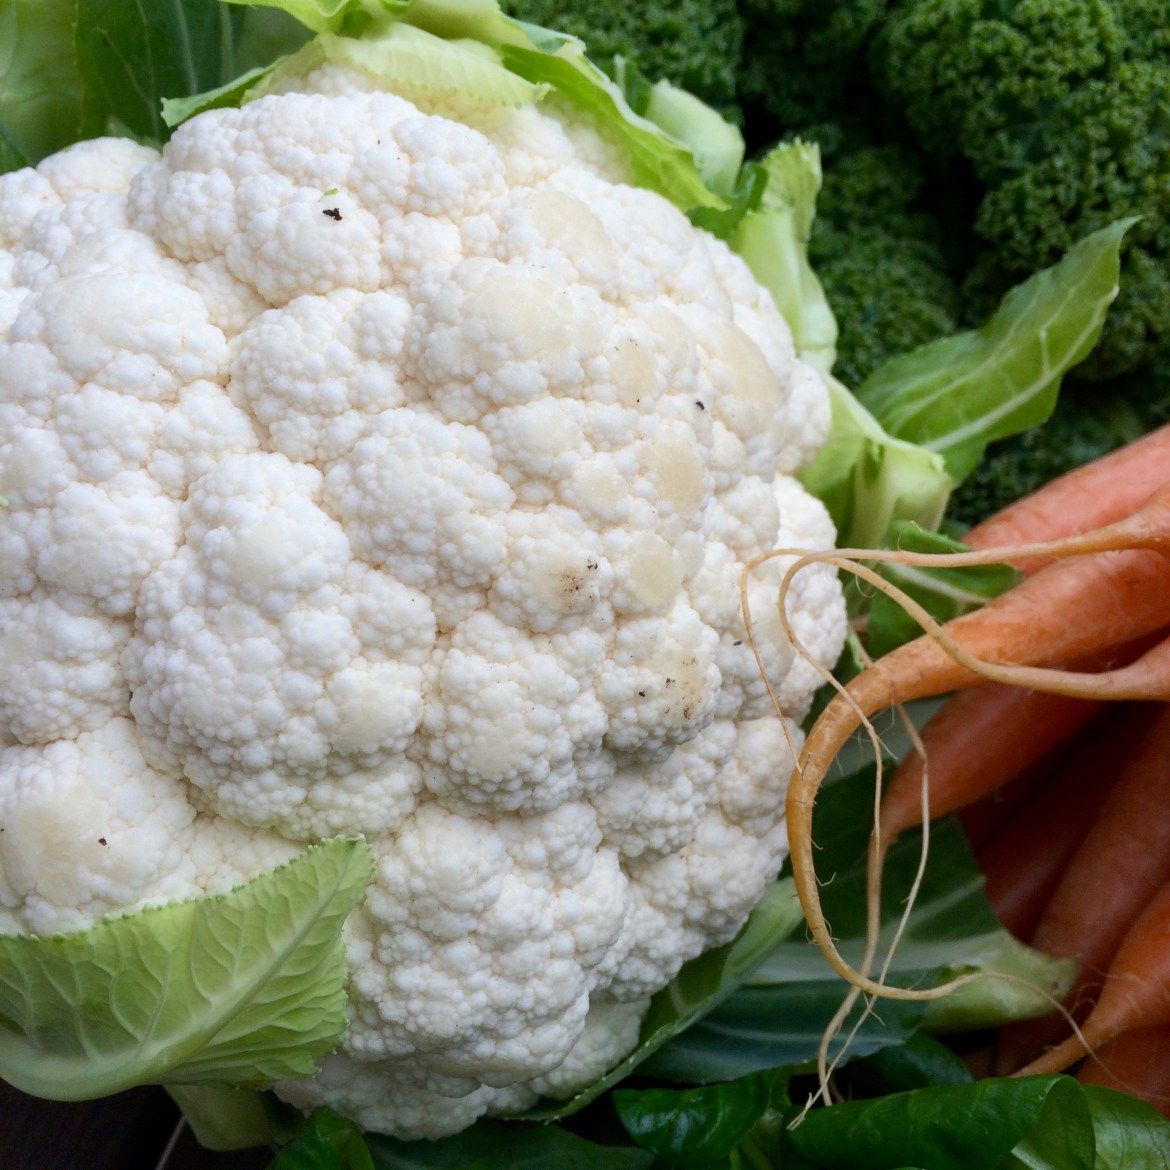 A whole raw cauliflower next to some carrots